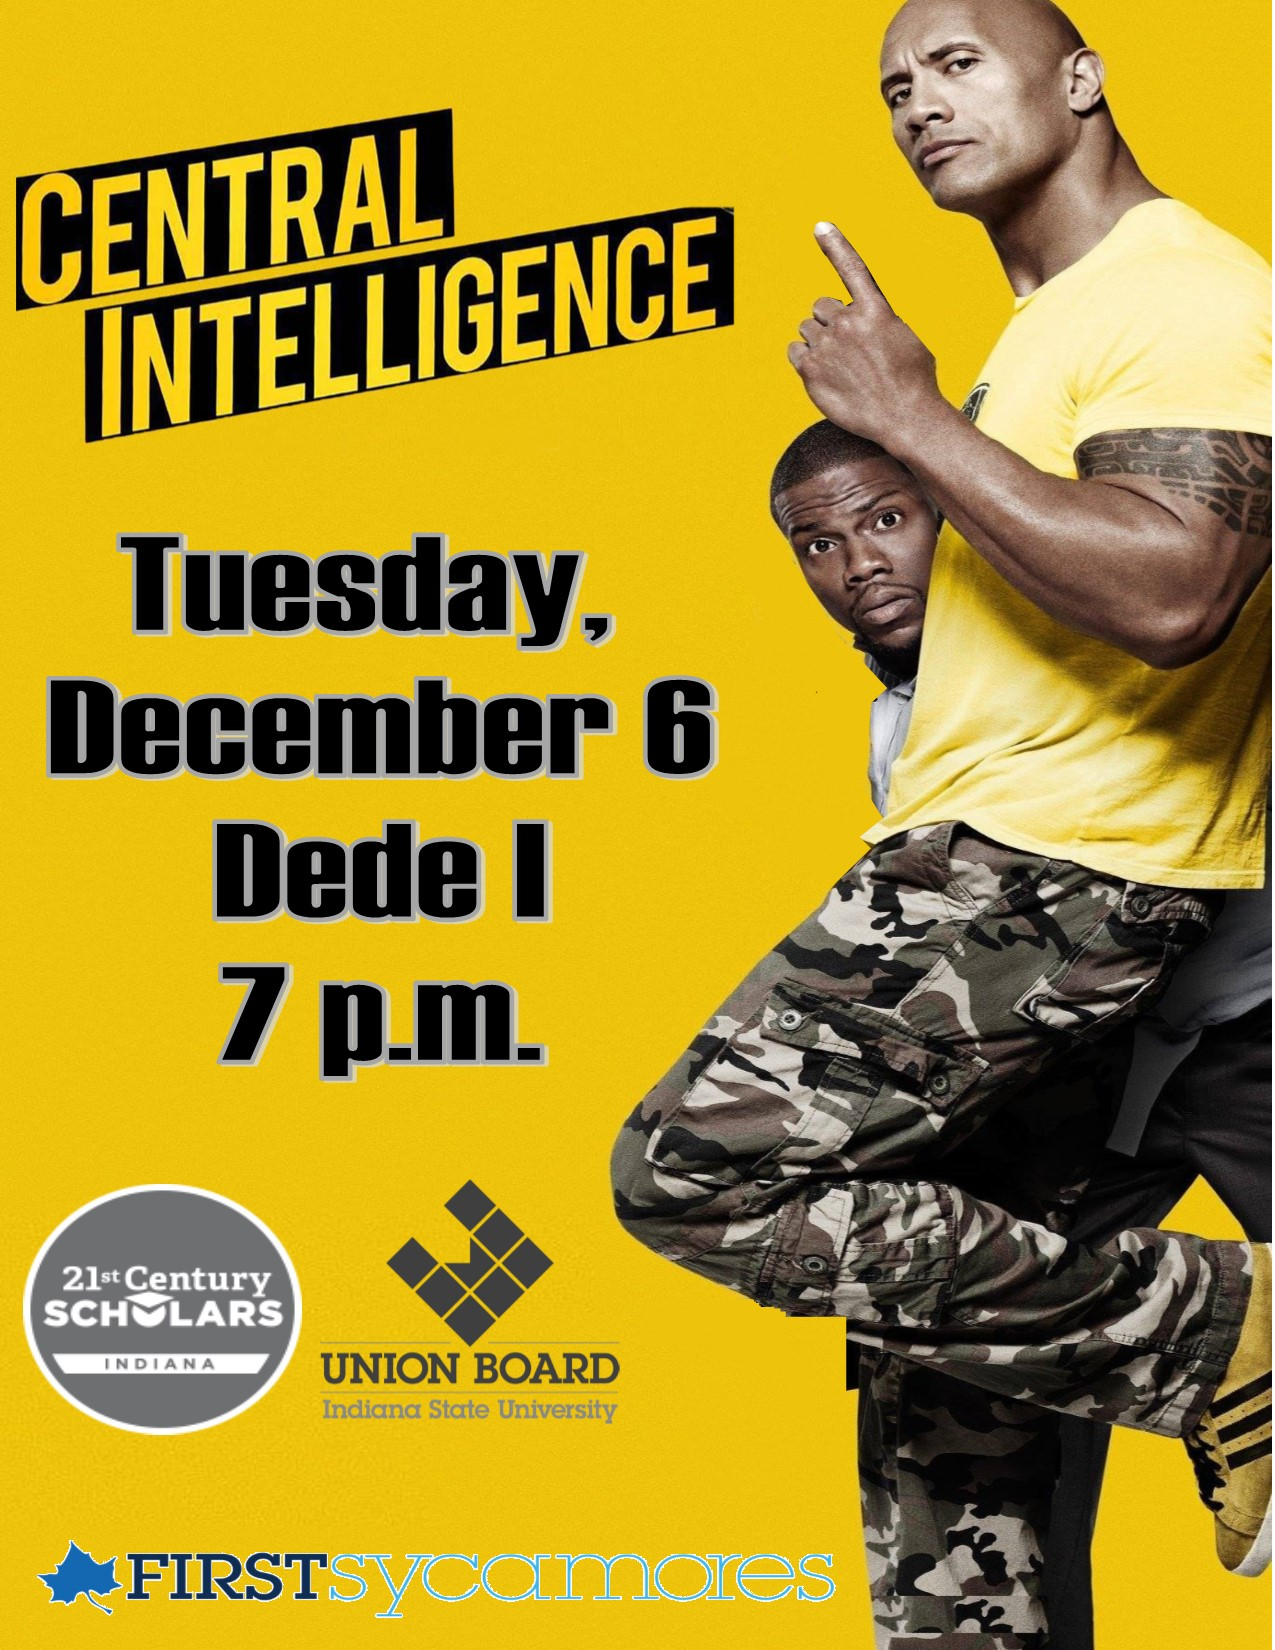 Central intelligence movie sponsored by Union Board